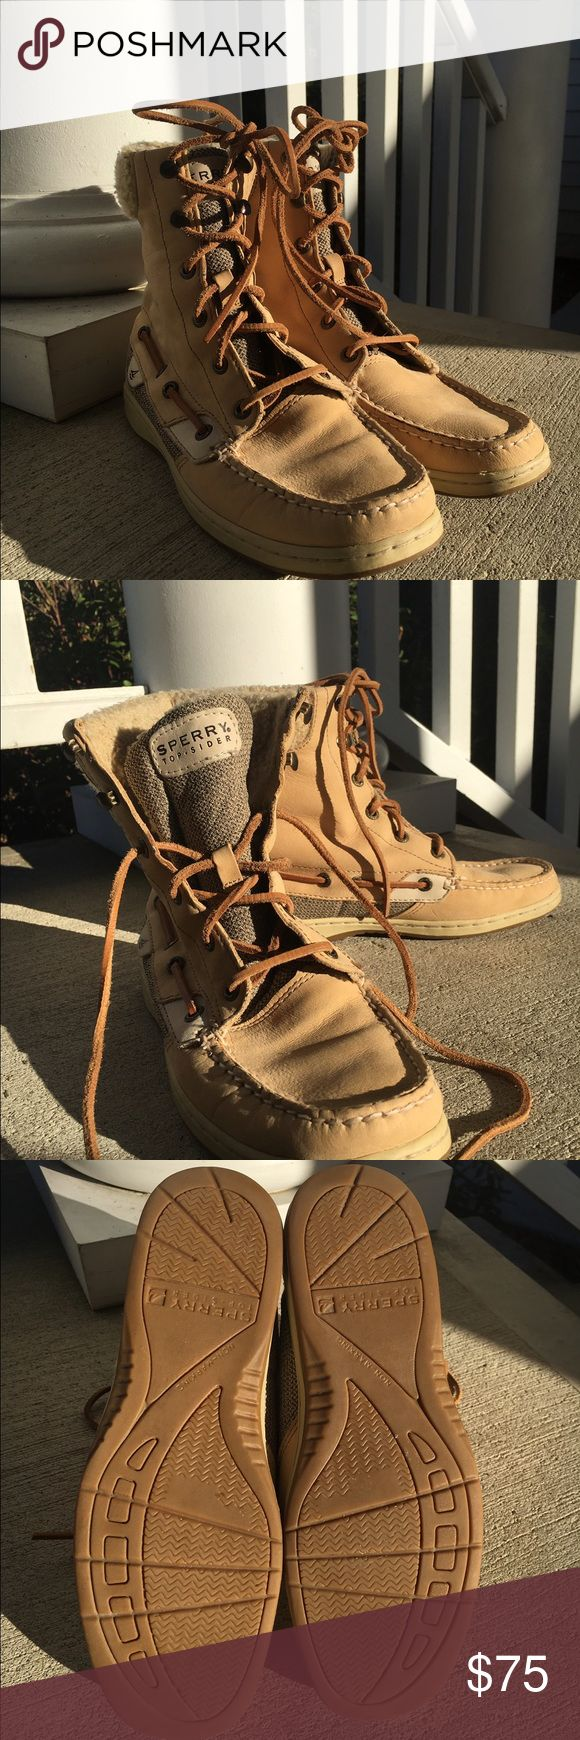 Sperry Top Sider Boots 7.5 Tan leather Sperry Top-Sider boots worn only a few times! Excellent condition soft leather. Size 7.5 Sperry Top-Sider Shoes Lace Up Boots